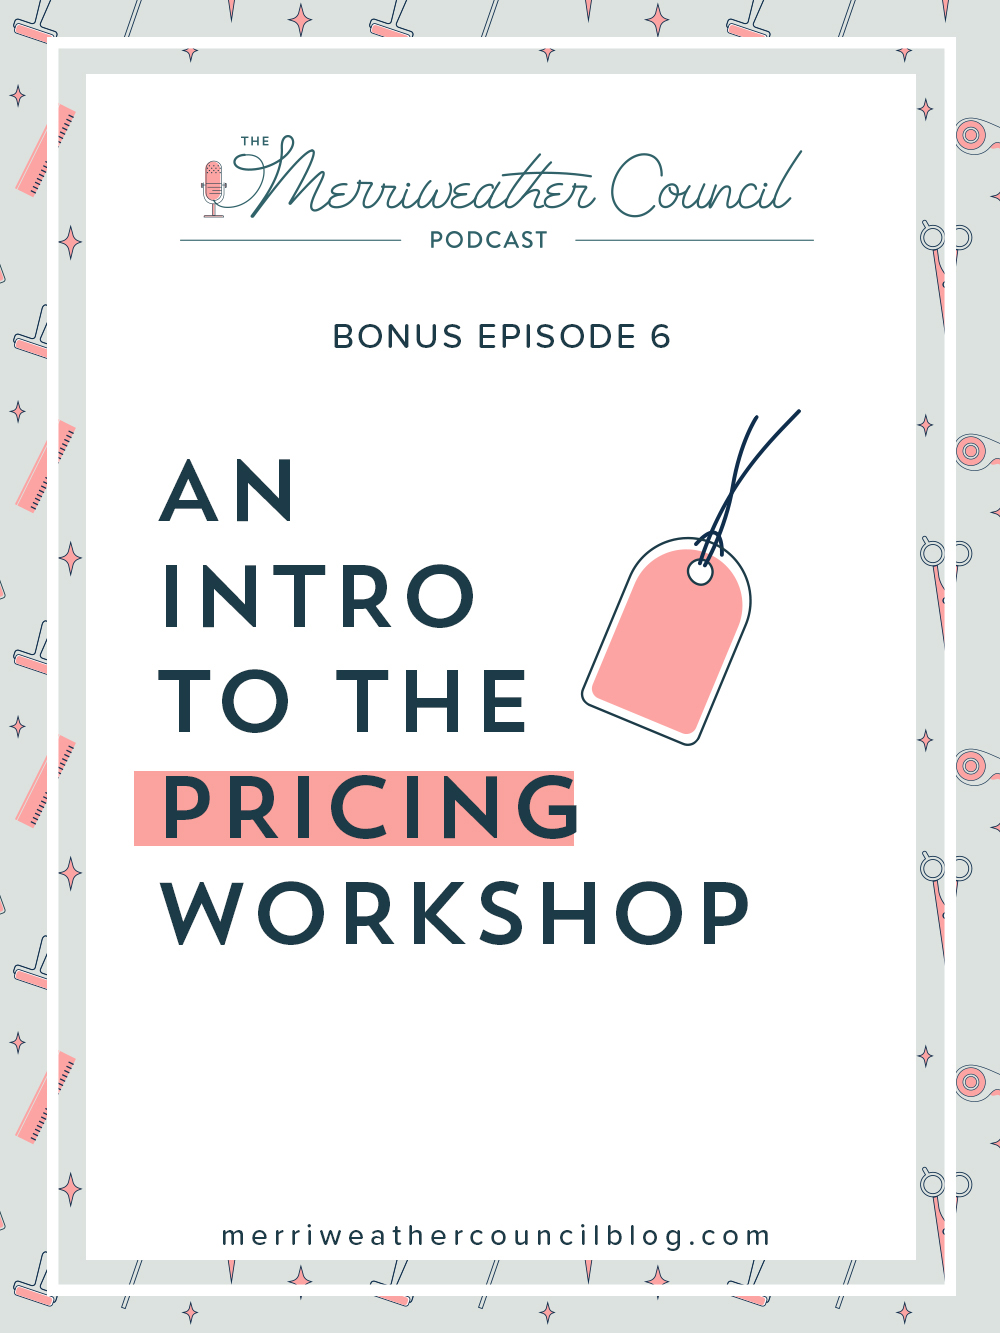 an intro to the pricing workshop | the merriweather council podcast